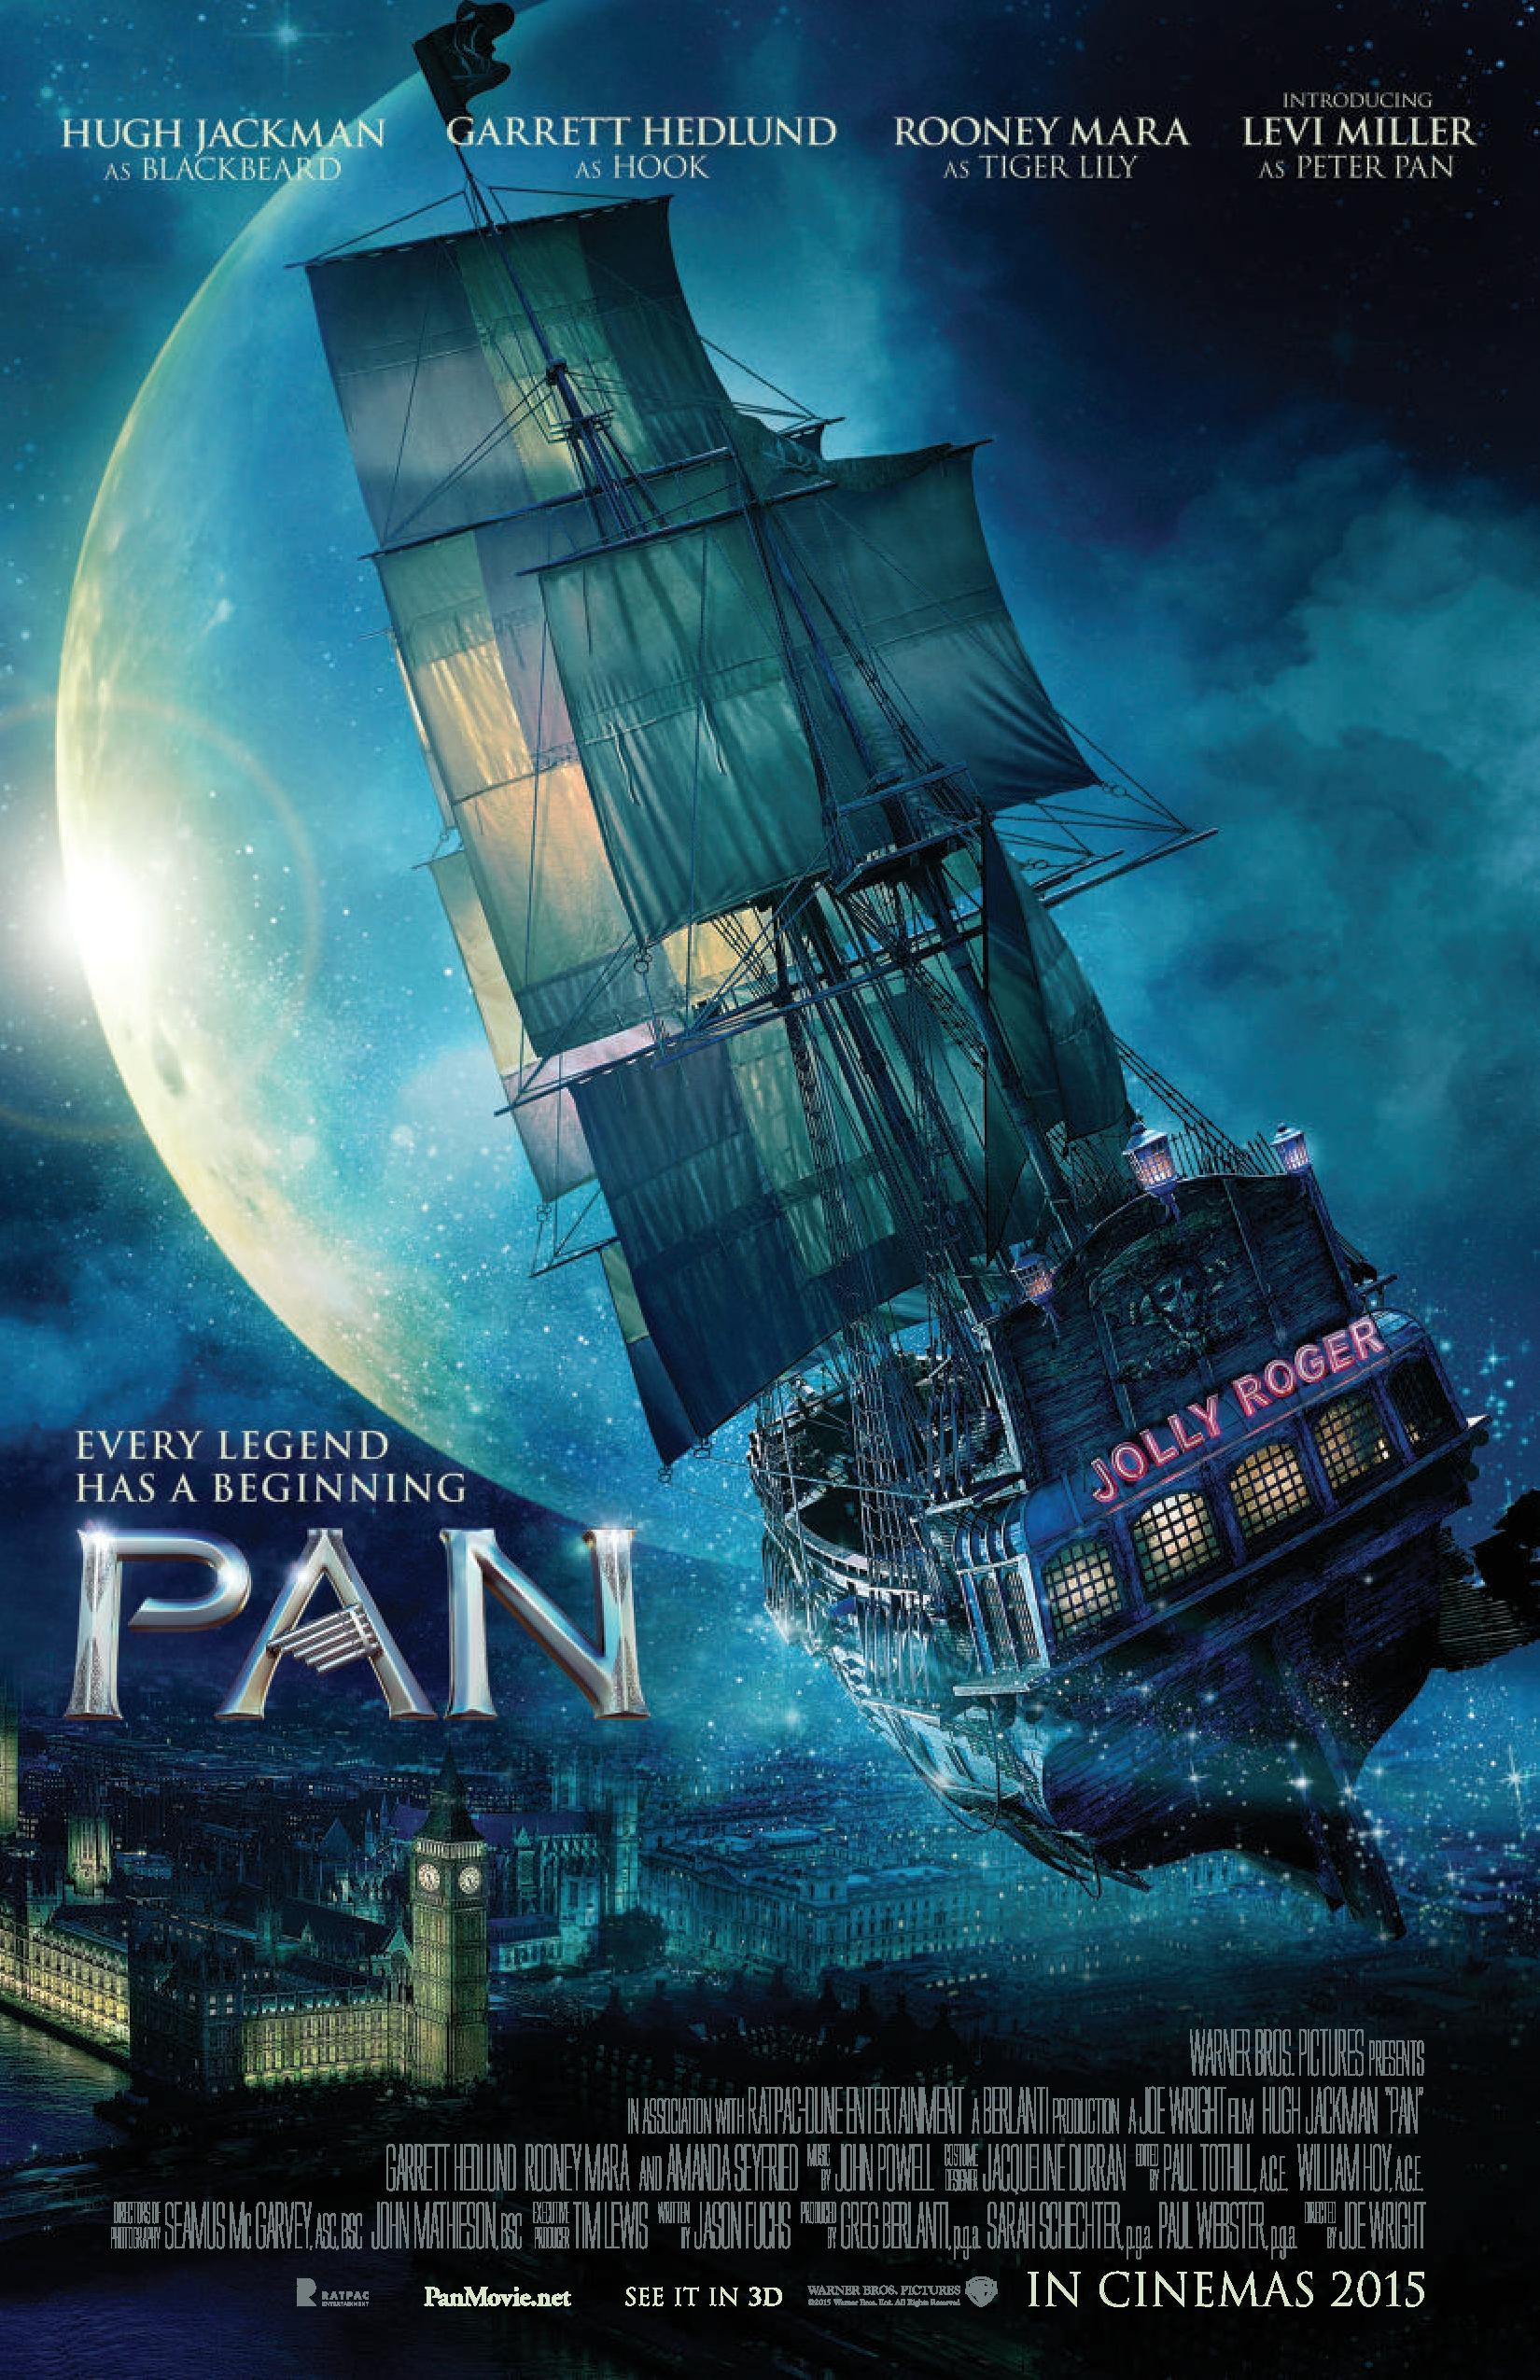 """""""Every legend has a beginning"""" Free printable Pan activity book to celebrate the new movie Pan"""